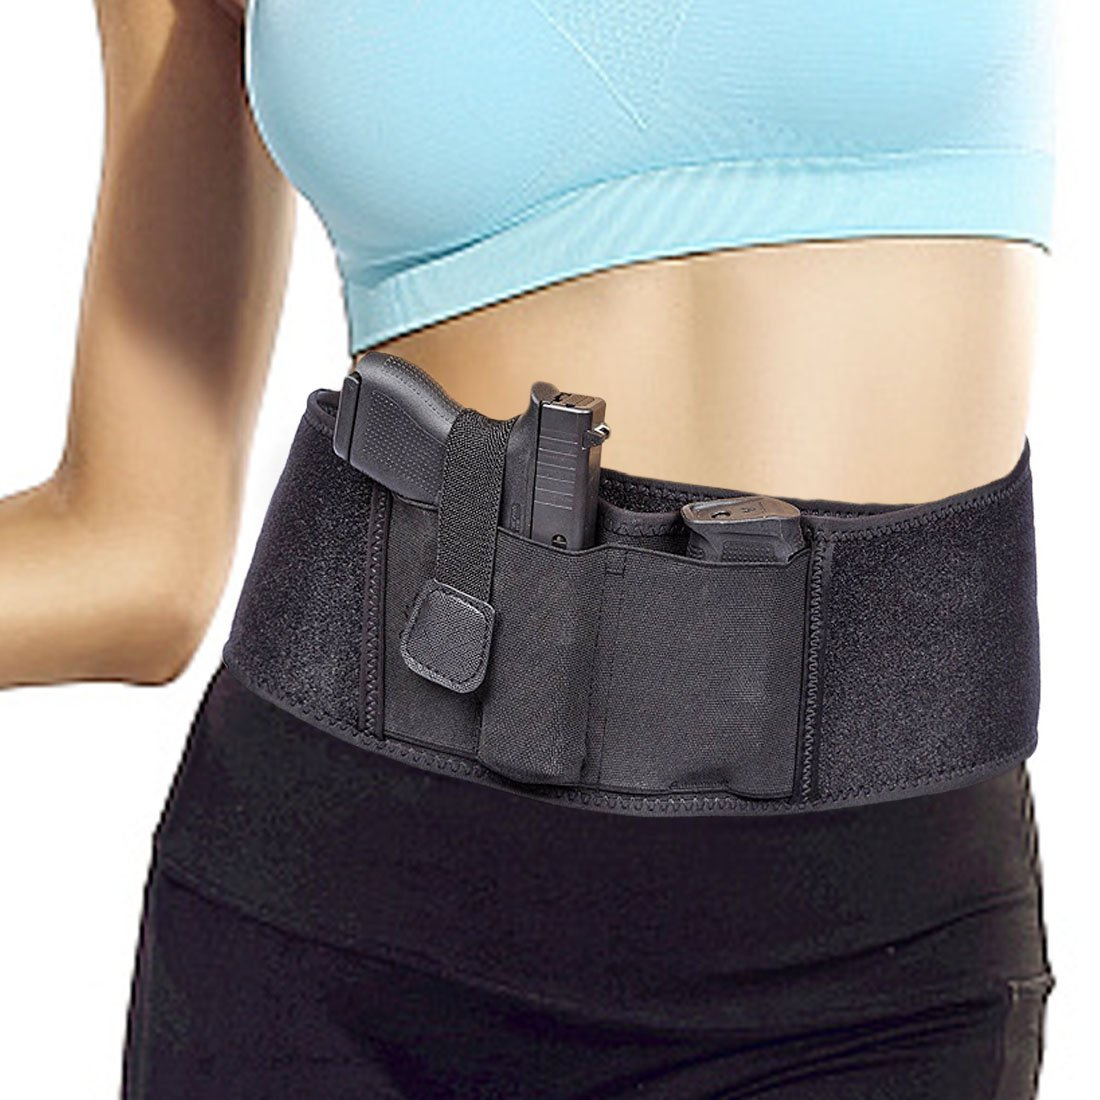 Concealed Carry Holster Waist Belly Band Gun Holster Elastic Handgun Holder Pistols Revolvers for Men and Women Fits Ruger LCP Smith Wesson Bodyguard, Shield, Glock 19, 42, 43, P238, and Similar Sized